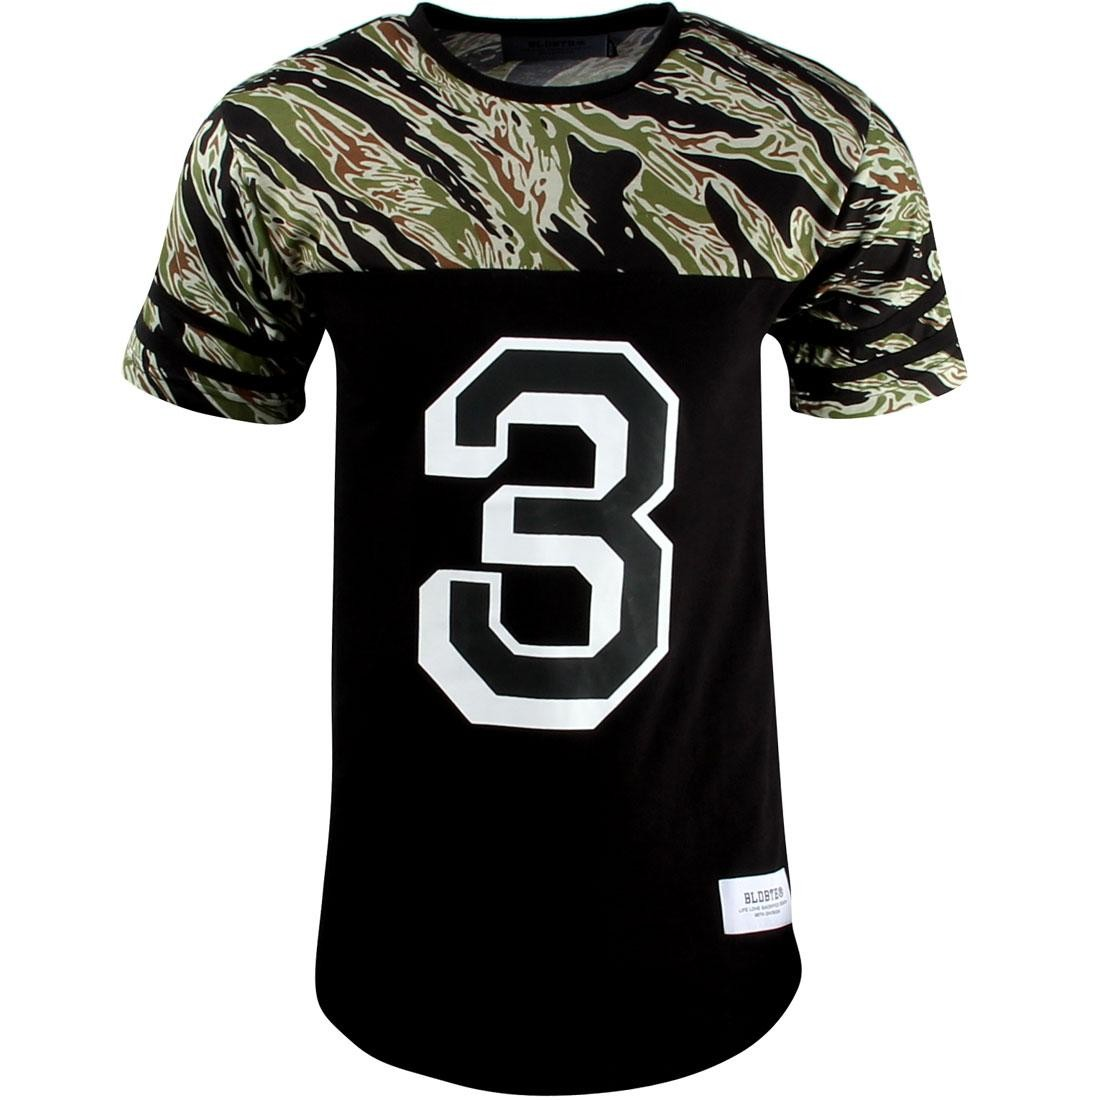 Bloodbath Third Camo Jersey (black)